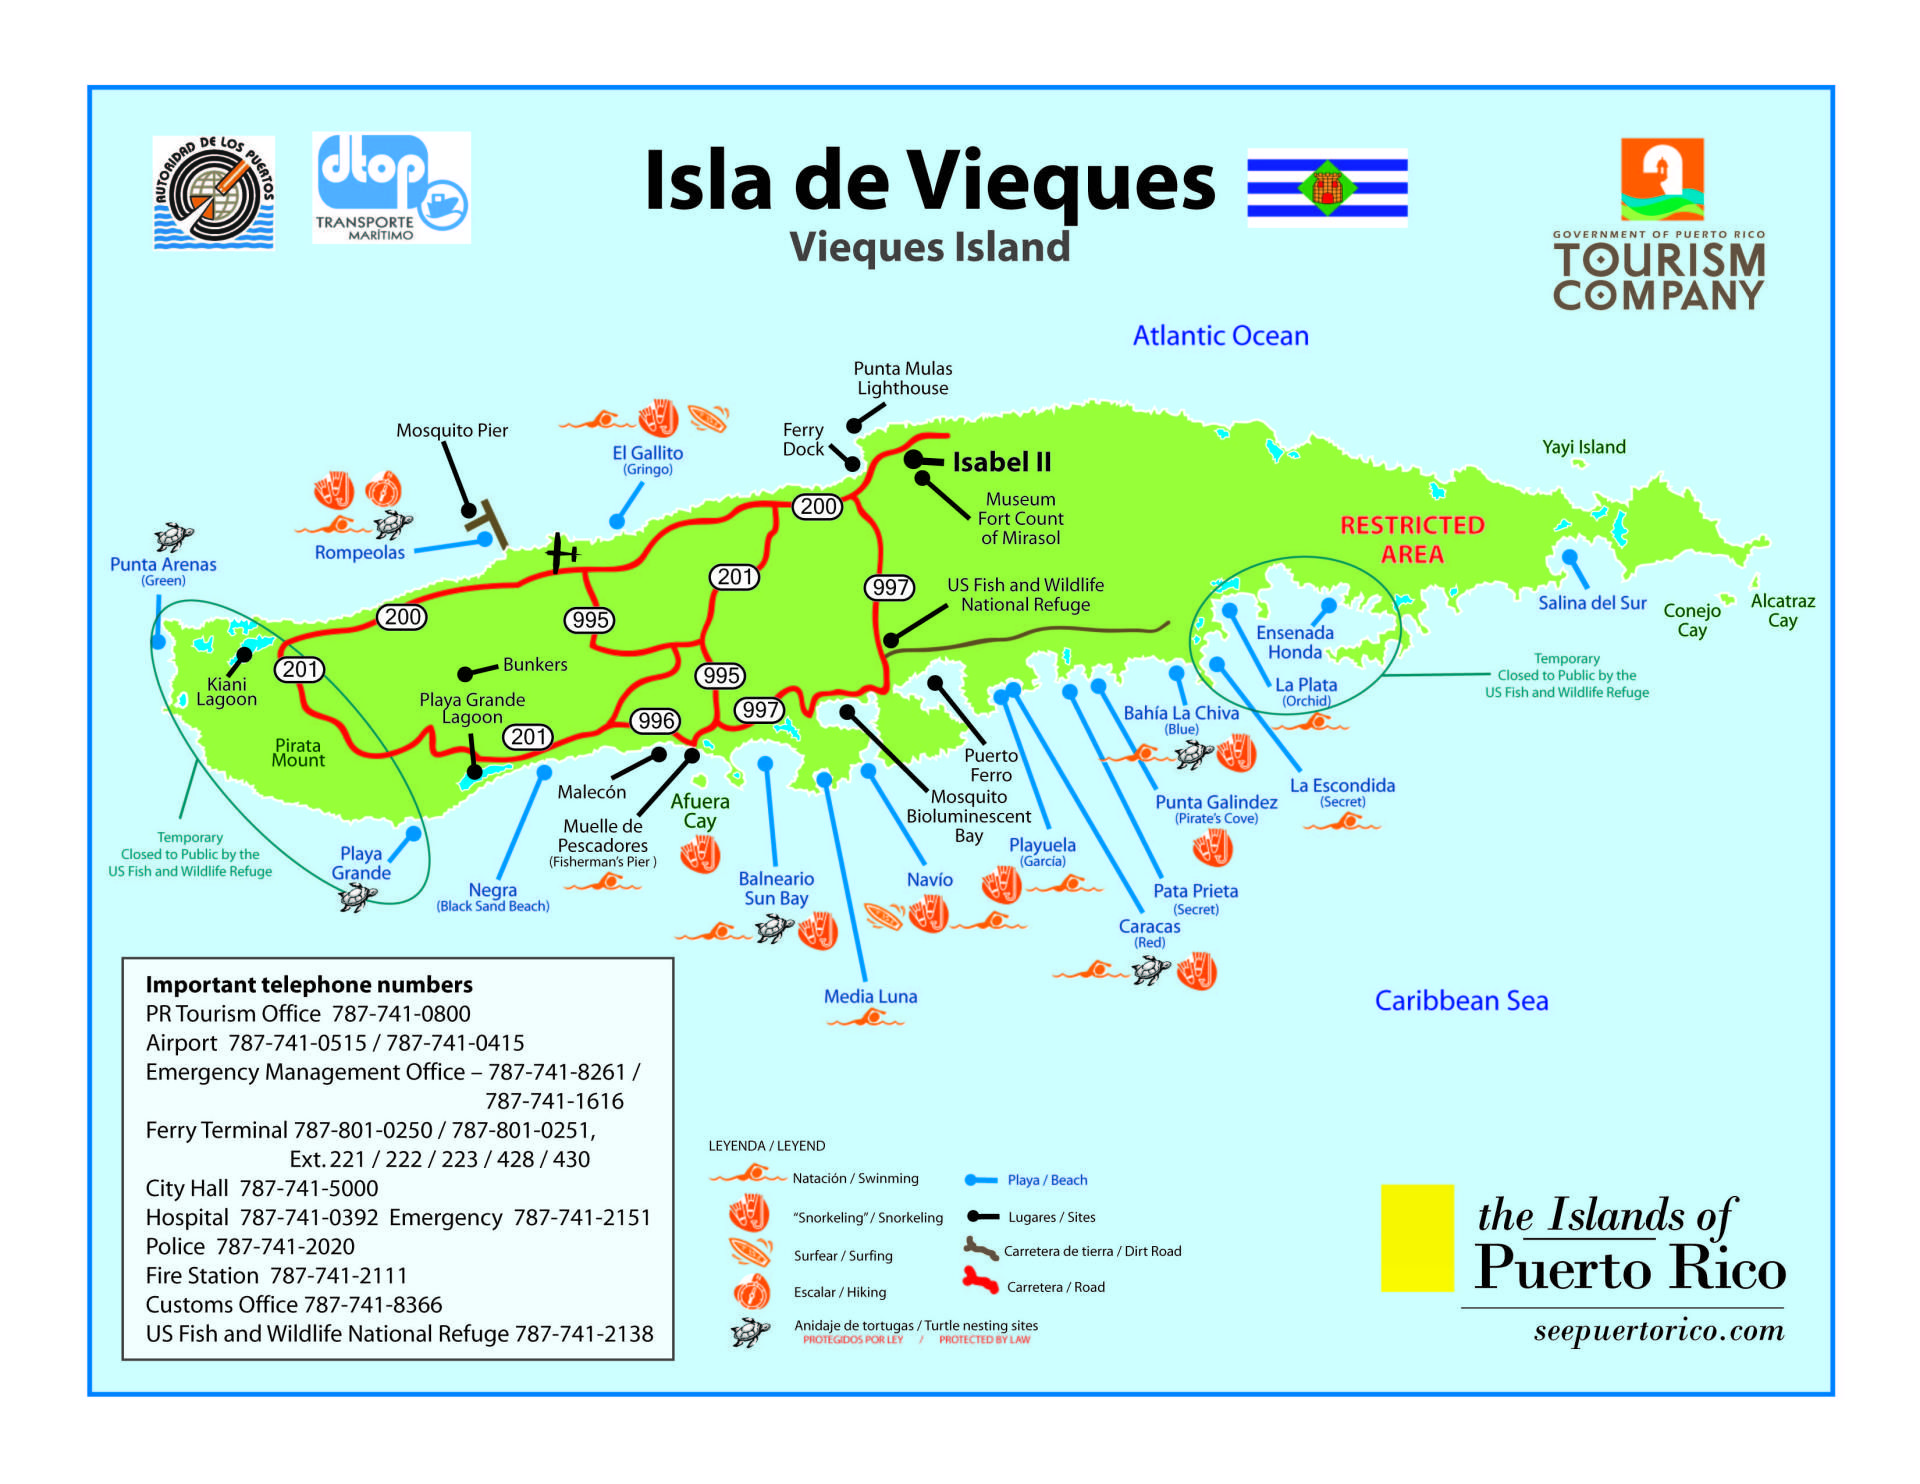 Mapa Vieques in 2019 | Puerto rico trip, Puerto rico, Travel ... on map of madrid, map of the bvi's, map of guam, map of puerto rico, map of mayaguez, map of rio piedras, map of camuy river cave park, map of gippsland lakes, map of trujillo alto, map of bermuda, map of culebra, map of borinquen, map of guaynabo, map of singapore, map of arecibo, map of caguas, map of pelican key, map of victoria, map of barcelona, map of tobago,